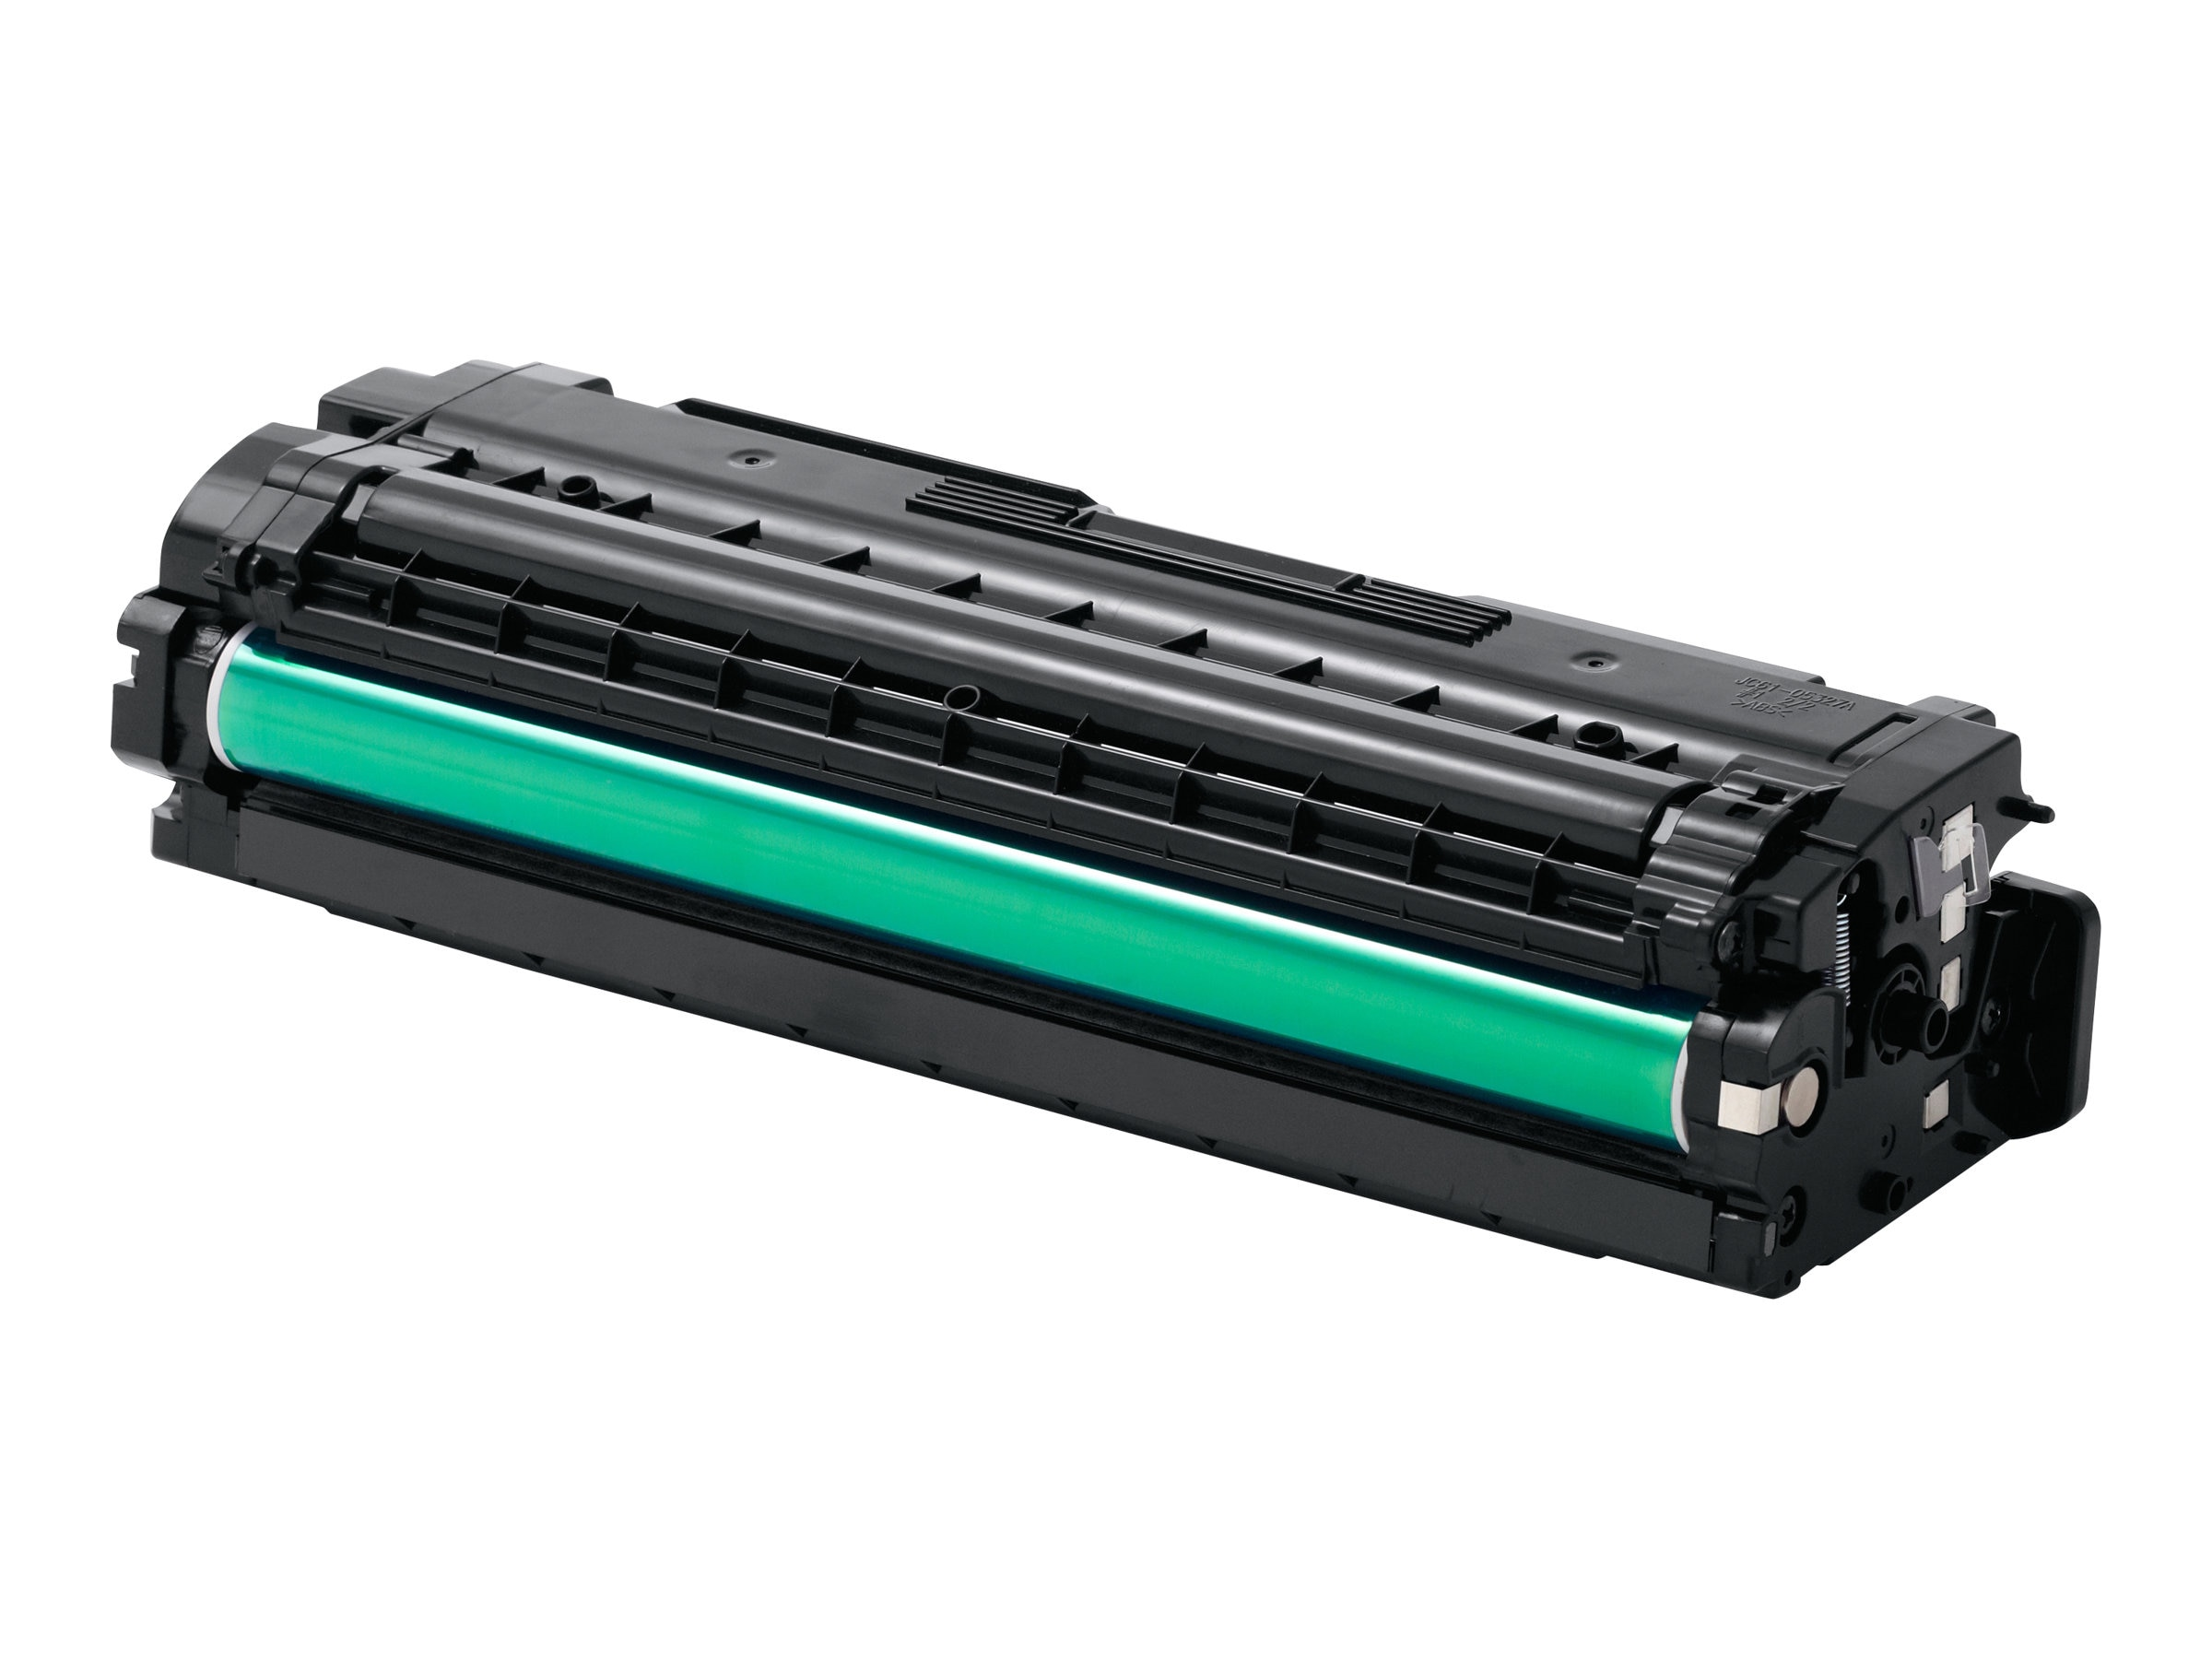 Samsung Yellow High Yield Toner Cartridge for CLX-6260FD & CLX-6260FW Color MFPs & CLP-680ND Color Printer, CLT-Y506L